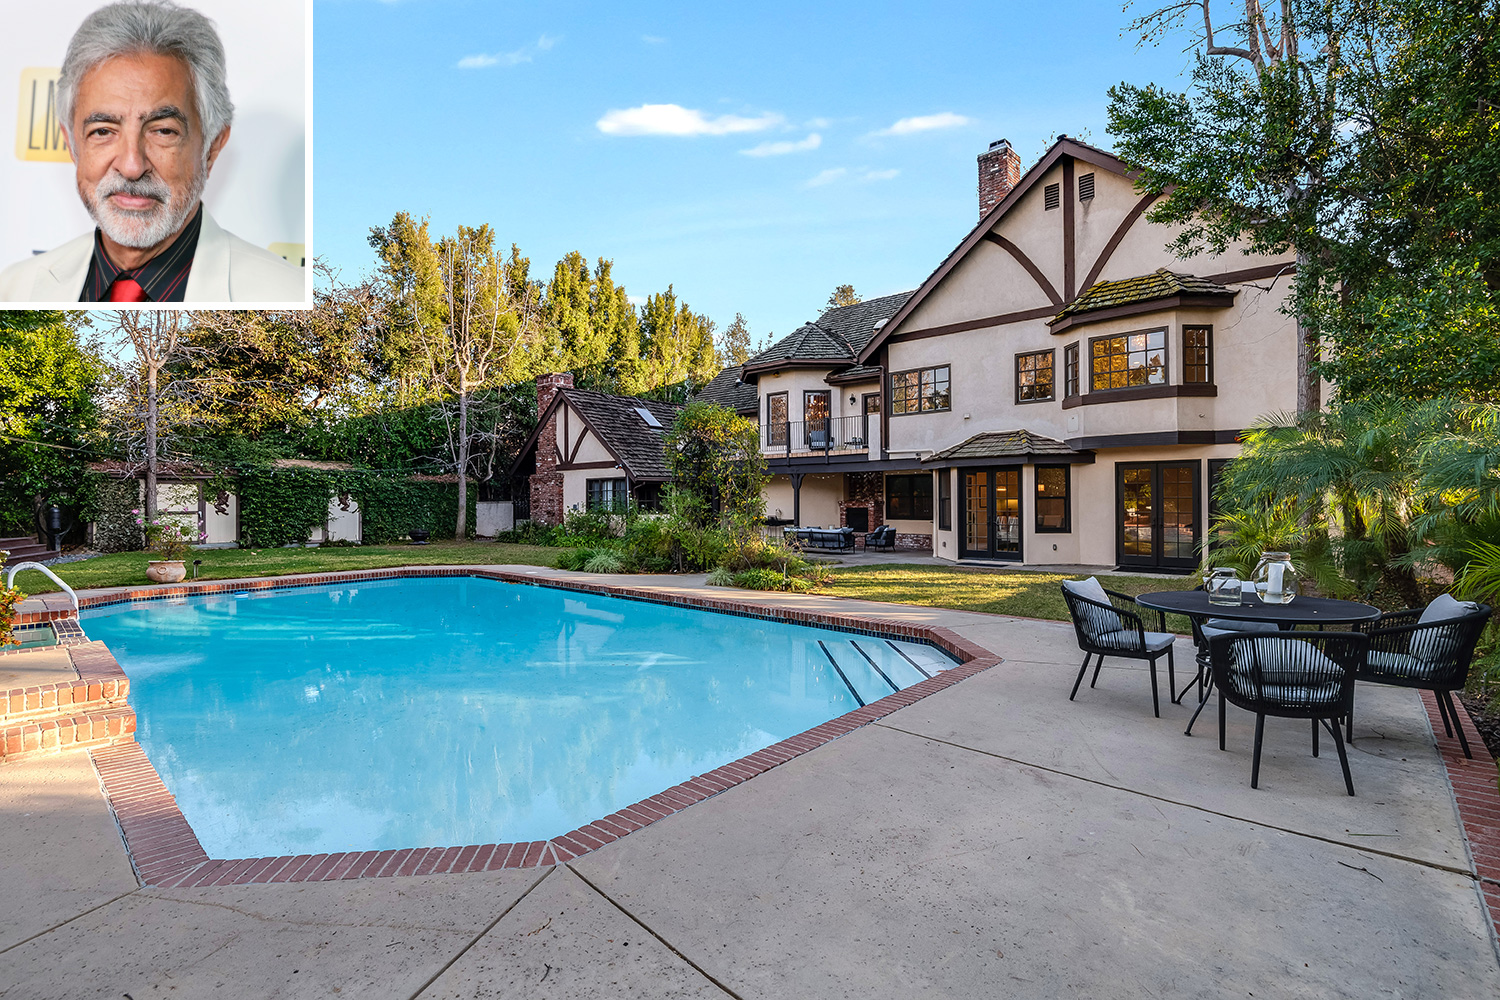 Criminal Minds' Joe Mantegna Lists California Home for $4M